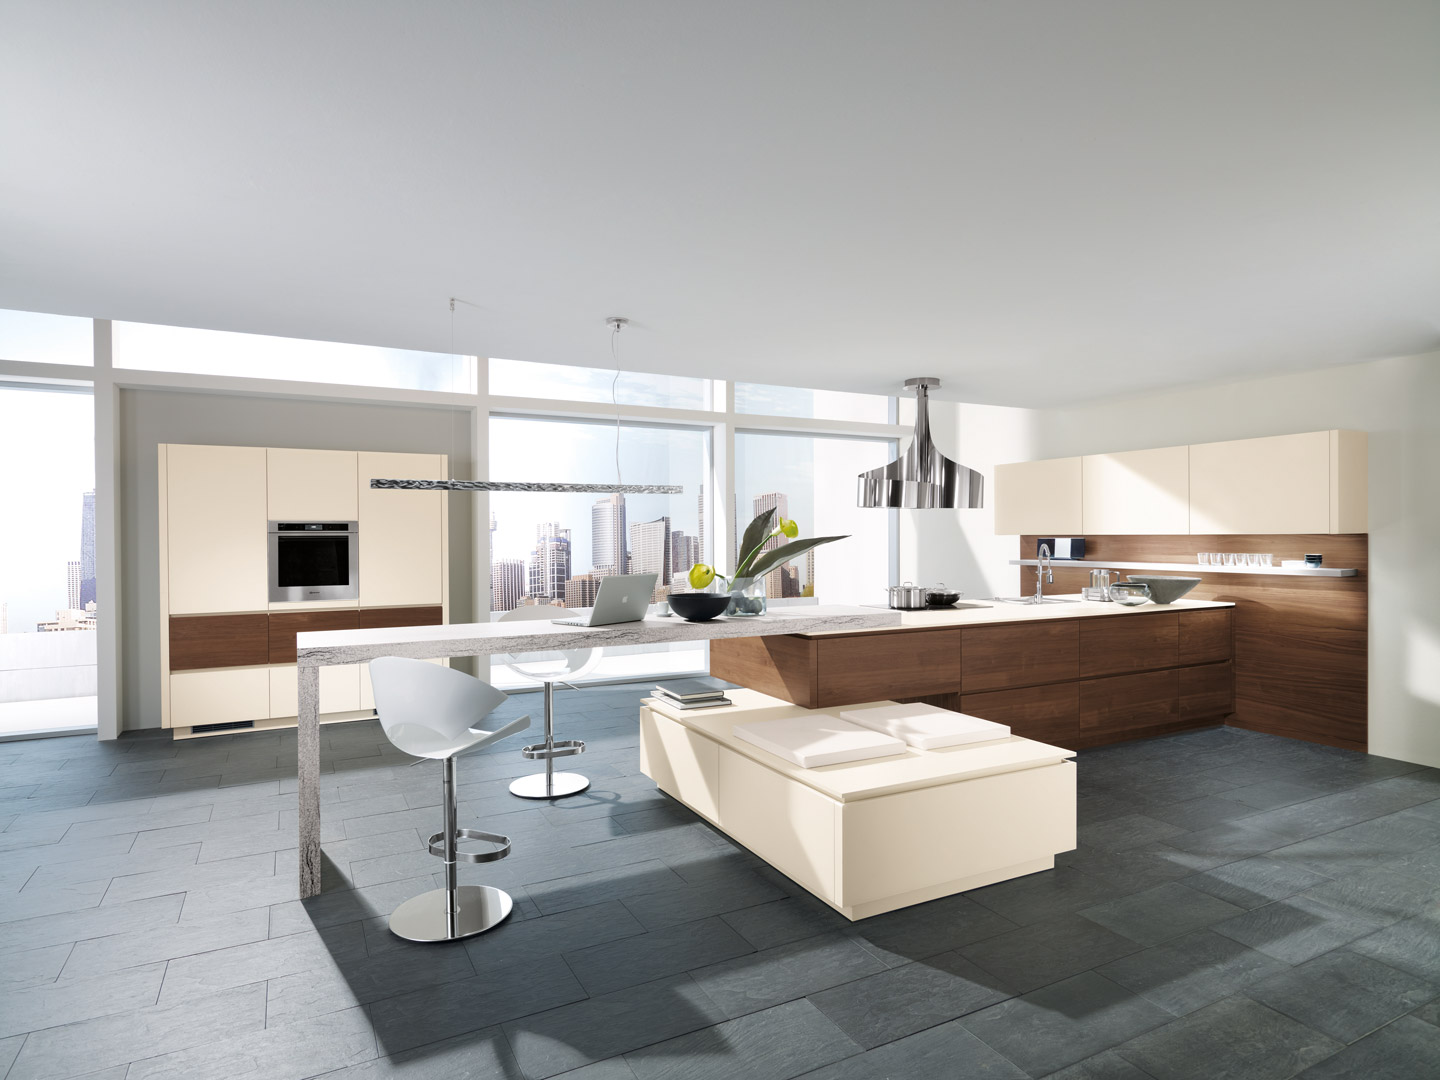 Fitted kitchens by alno sussex surrey london - Kitchens by design new brighton mn ...